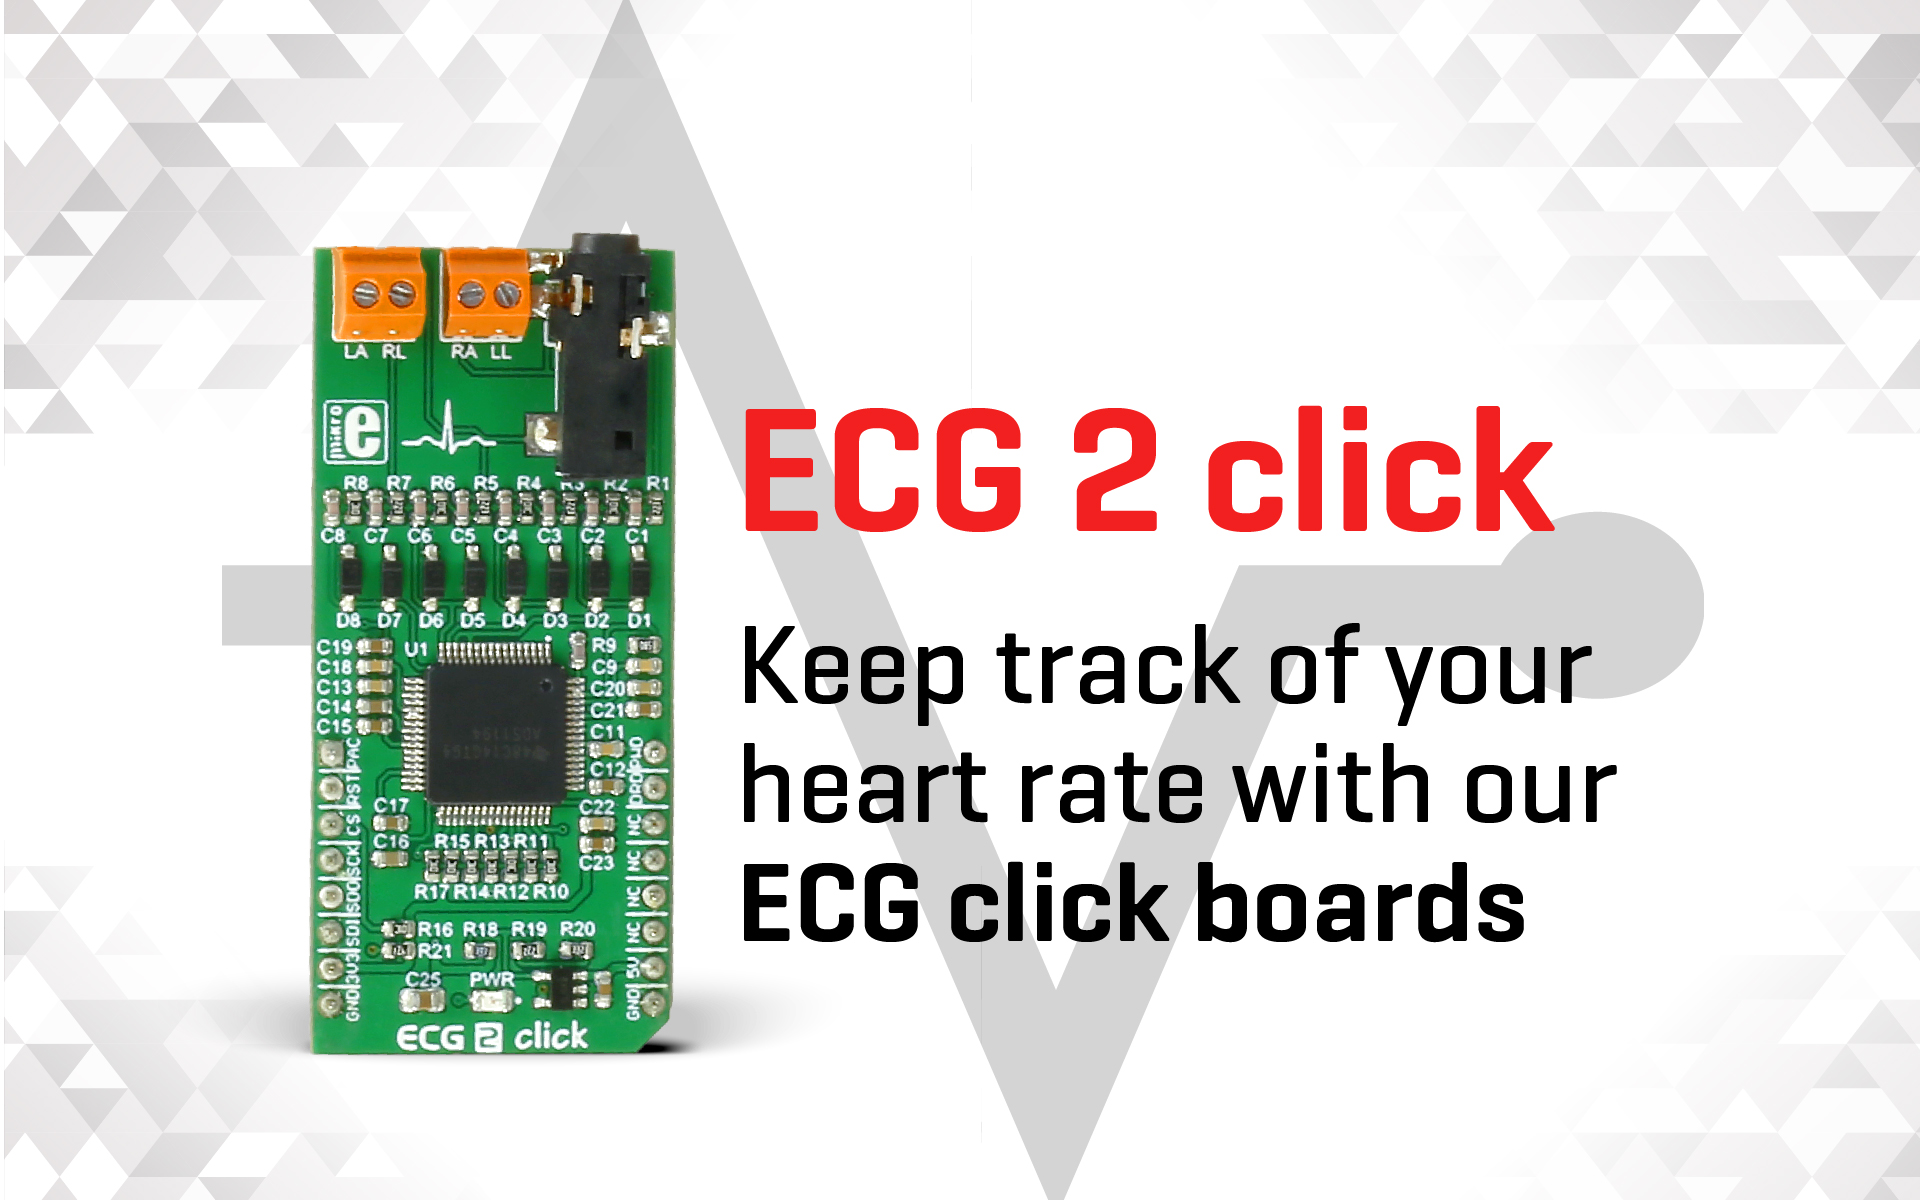 Keep track of your heart's health with ECG 2 click